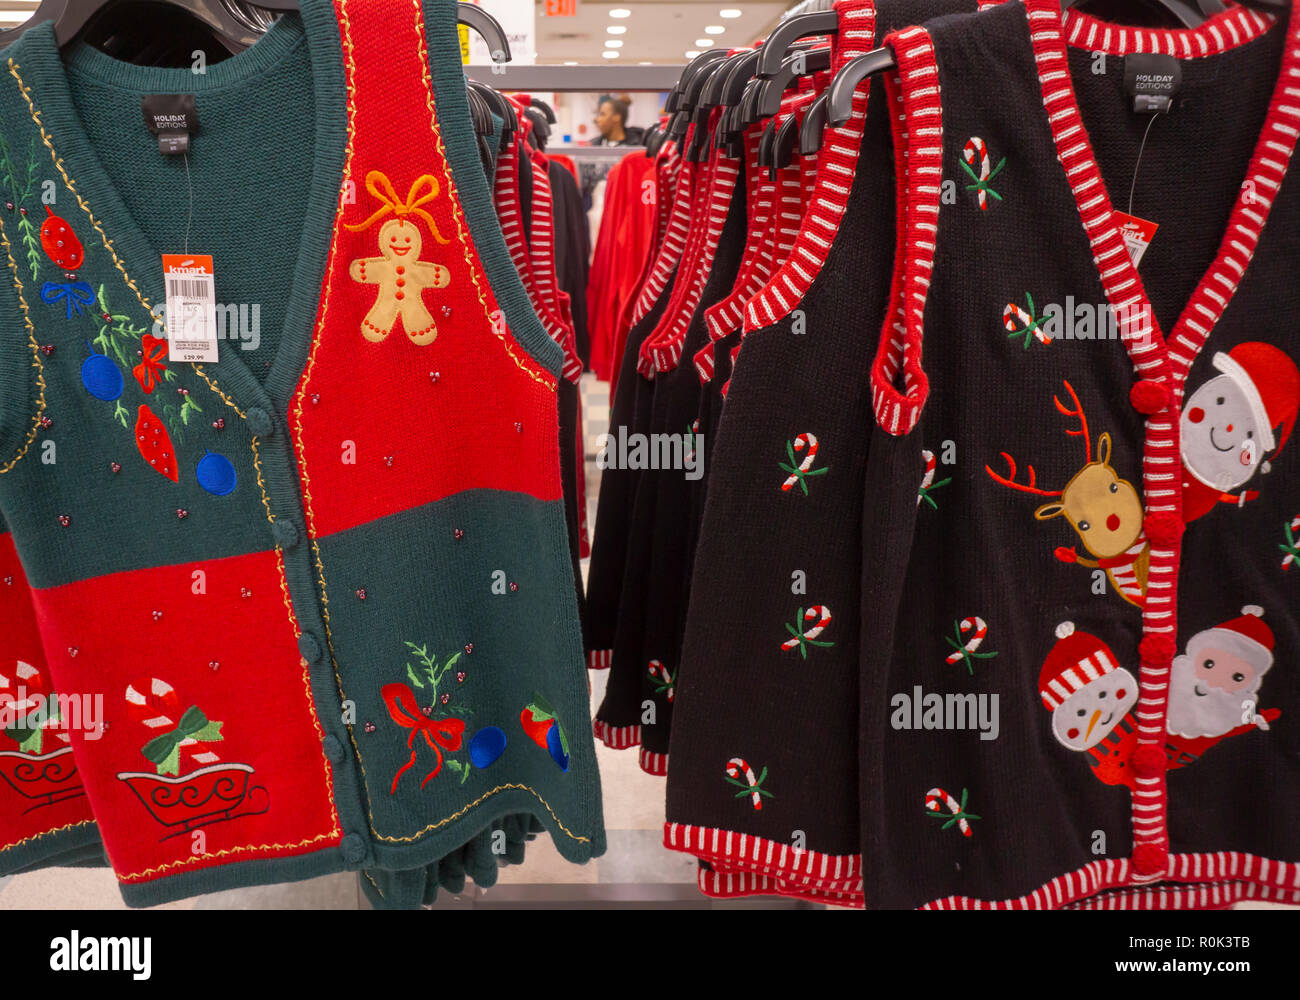 Ugly Christmas Sweaters Stock Photos & Ugly Christmas Sweaters Stock ...